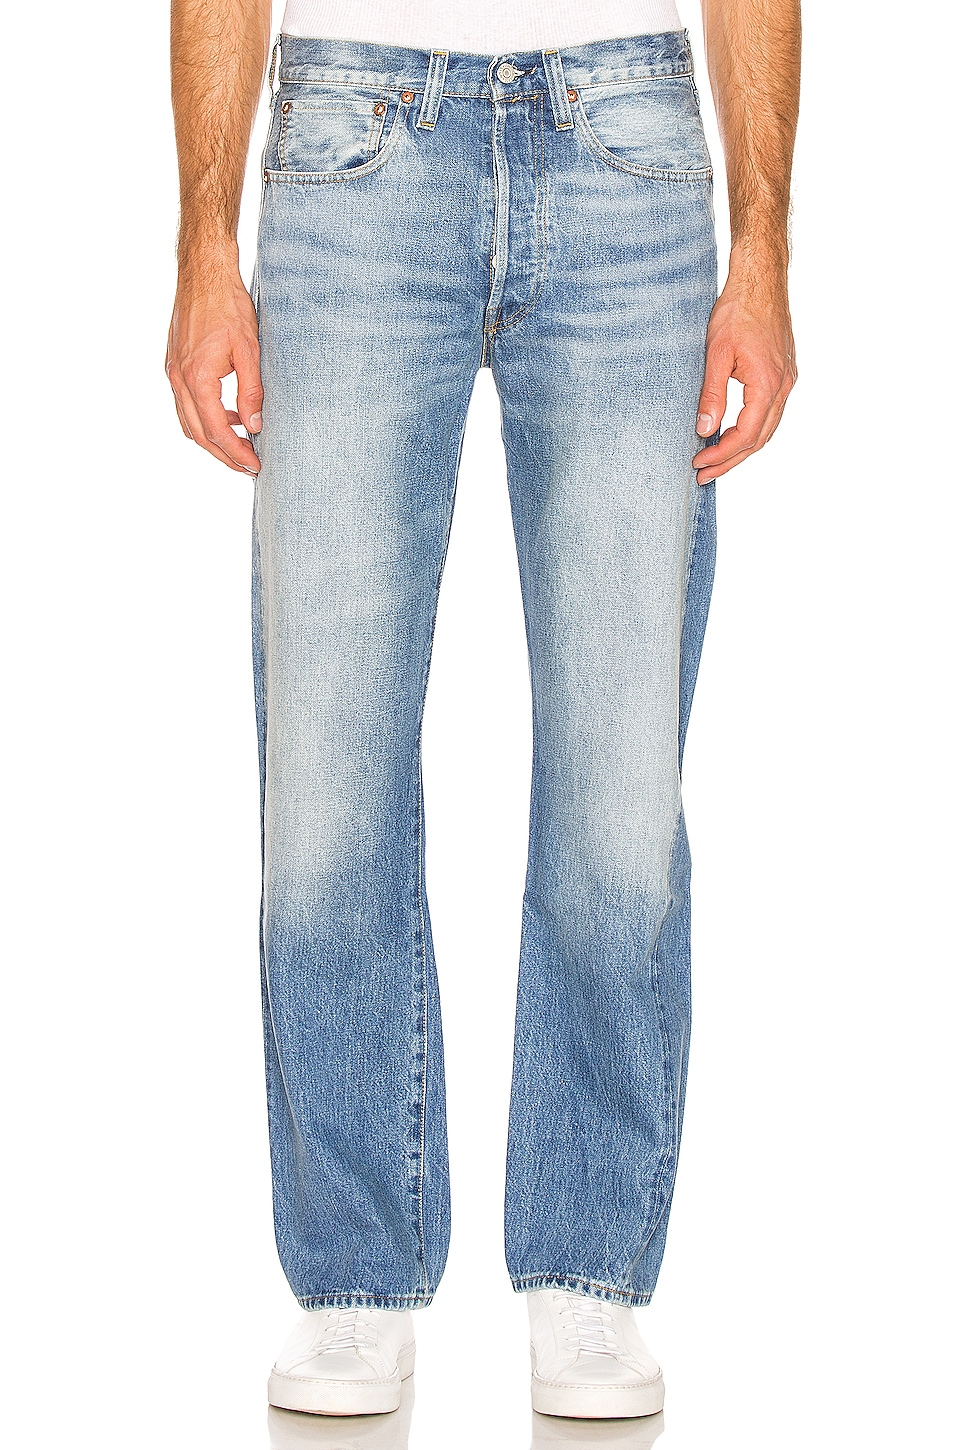 LEVI'S Vintage Clothing 1947 501 Jeans in Moon Rock